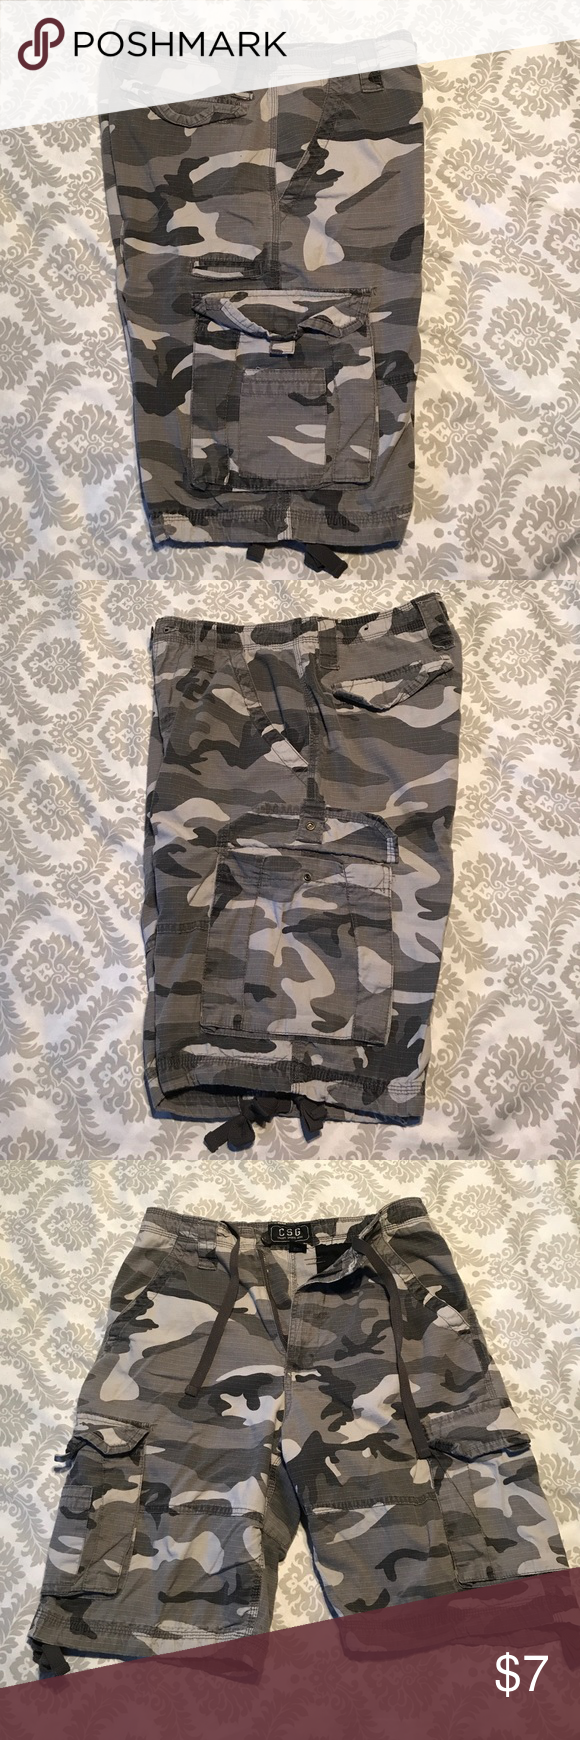 4079adcd0a Used CSG (Champs Sport Gear) men's black and white and camo cargo shorts.  Used. Size 32. Drawstring at waist and at the inseams. CSG Shorts Cargo